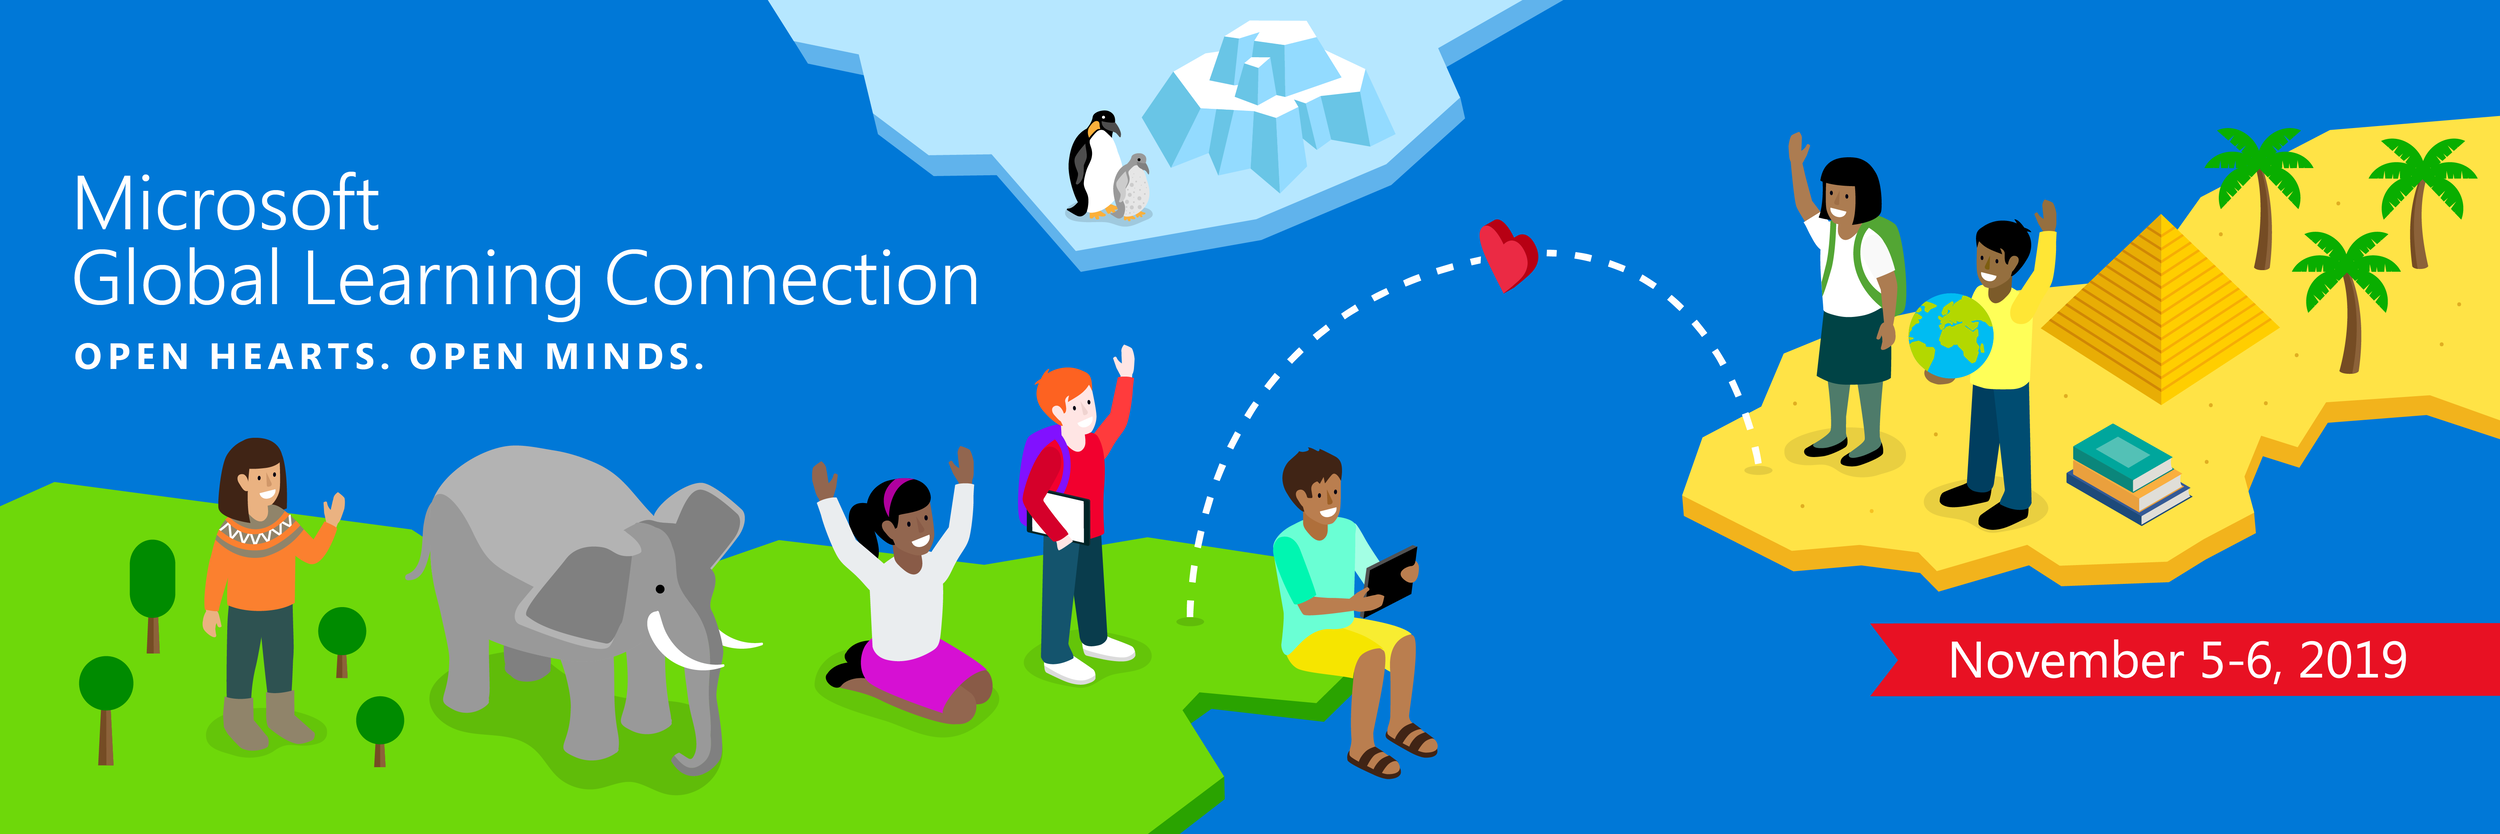 Microsoft Global Learning Connection